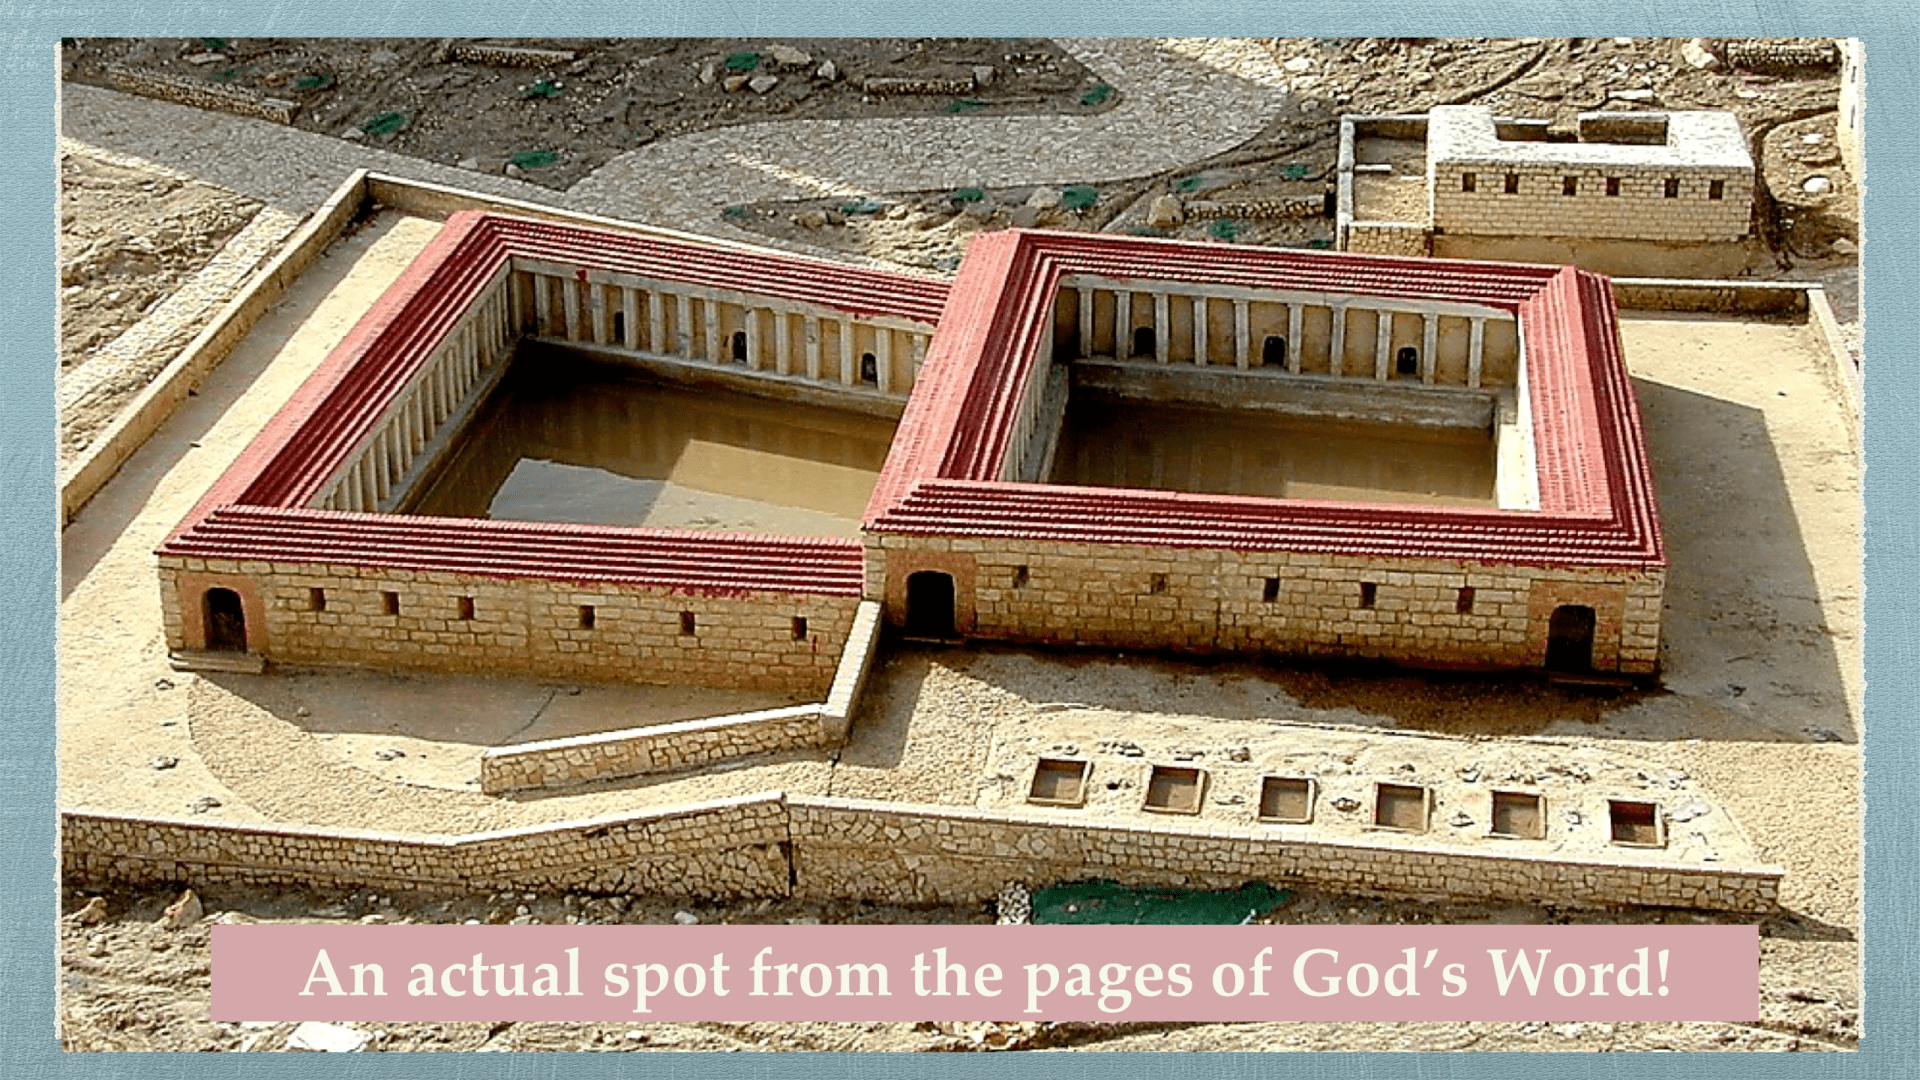 JET-06 - A Jet Tour Of The Majestic Life Of Christ & God's Authentic Word (16)